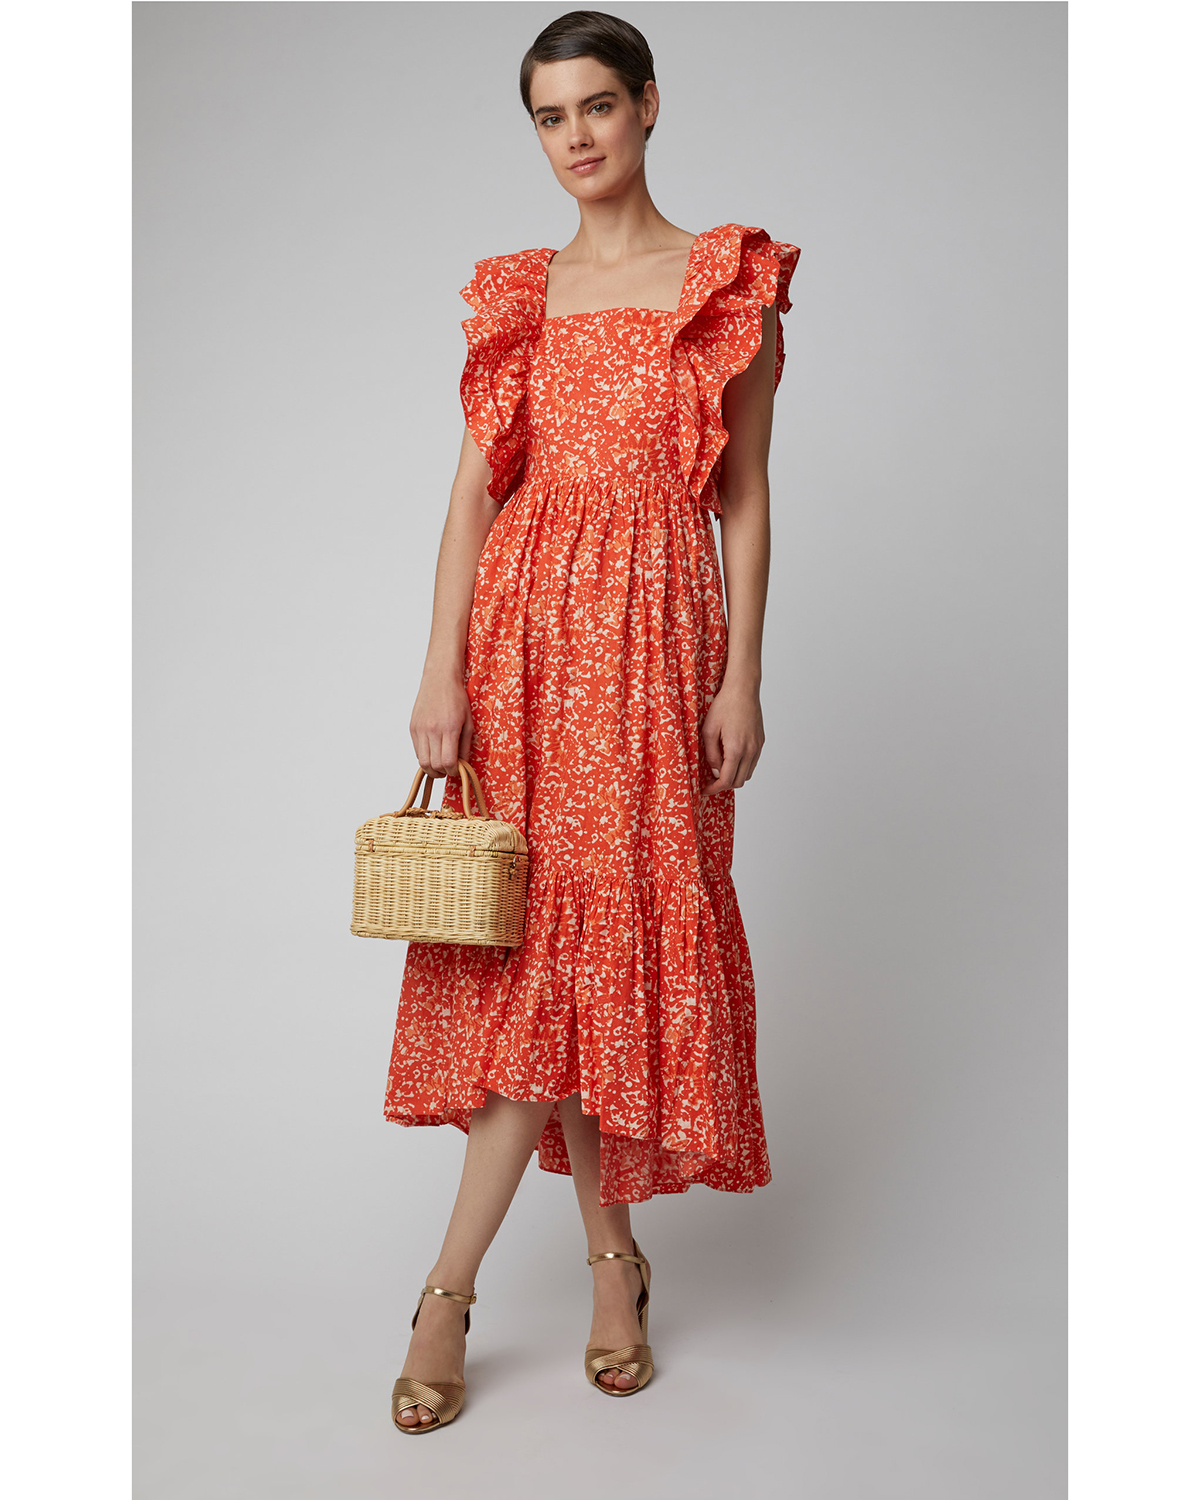 coral and white floral printed midi dress